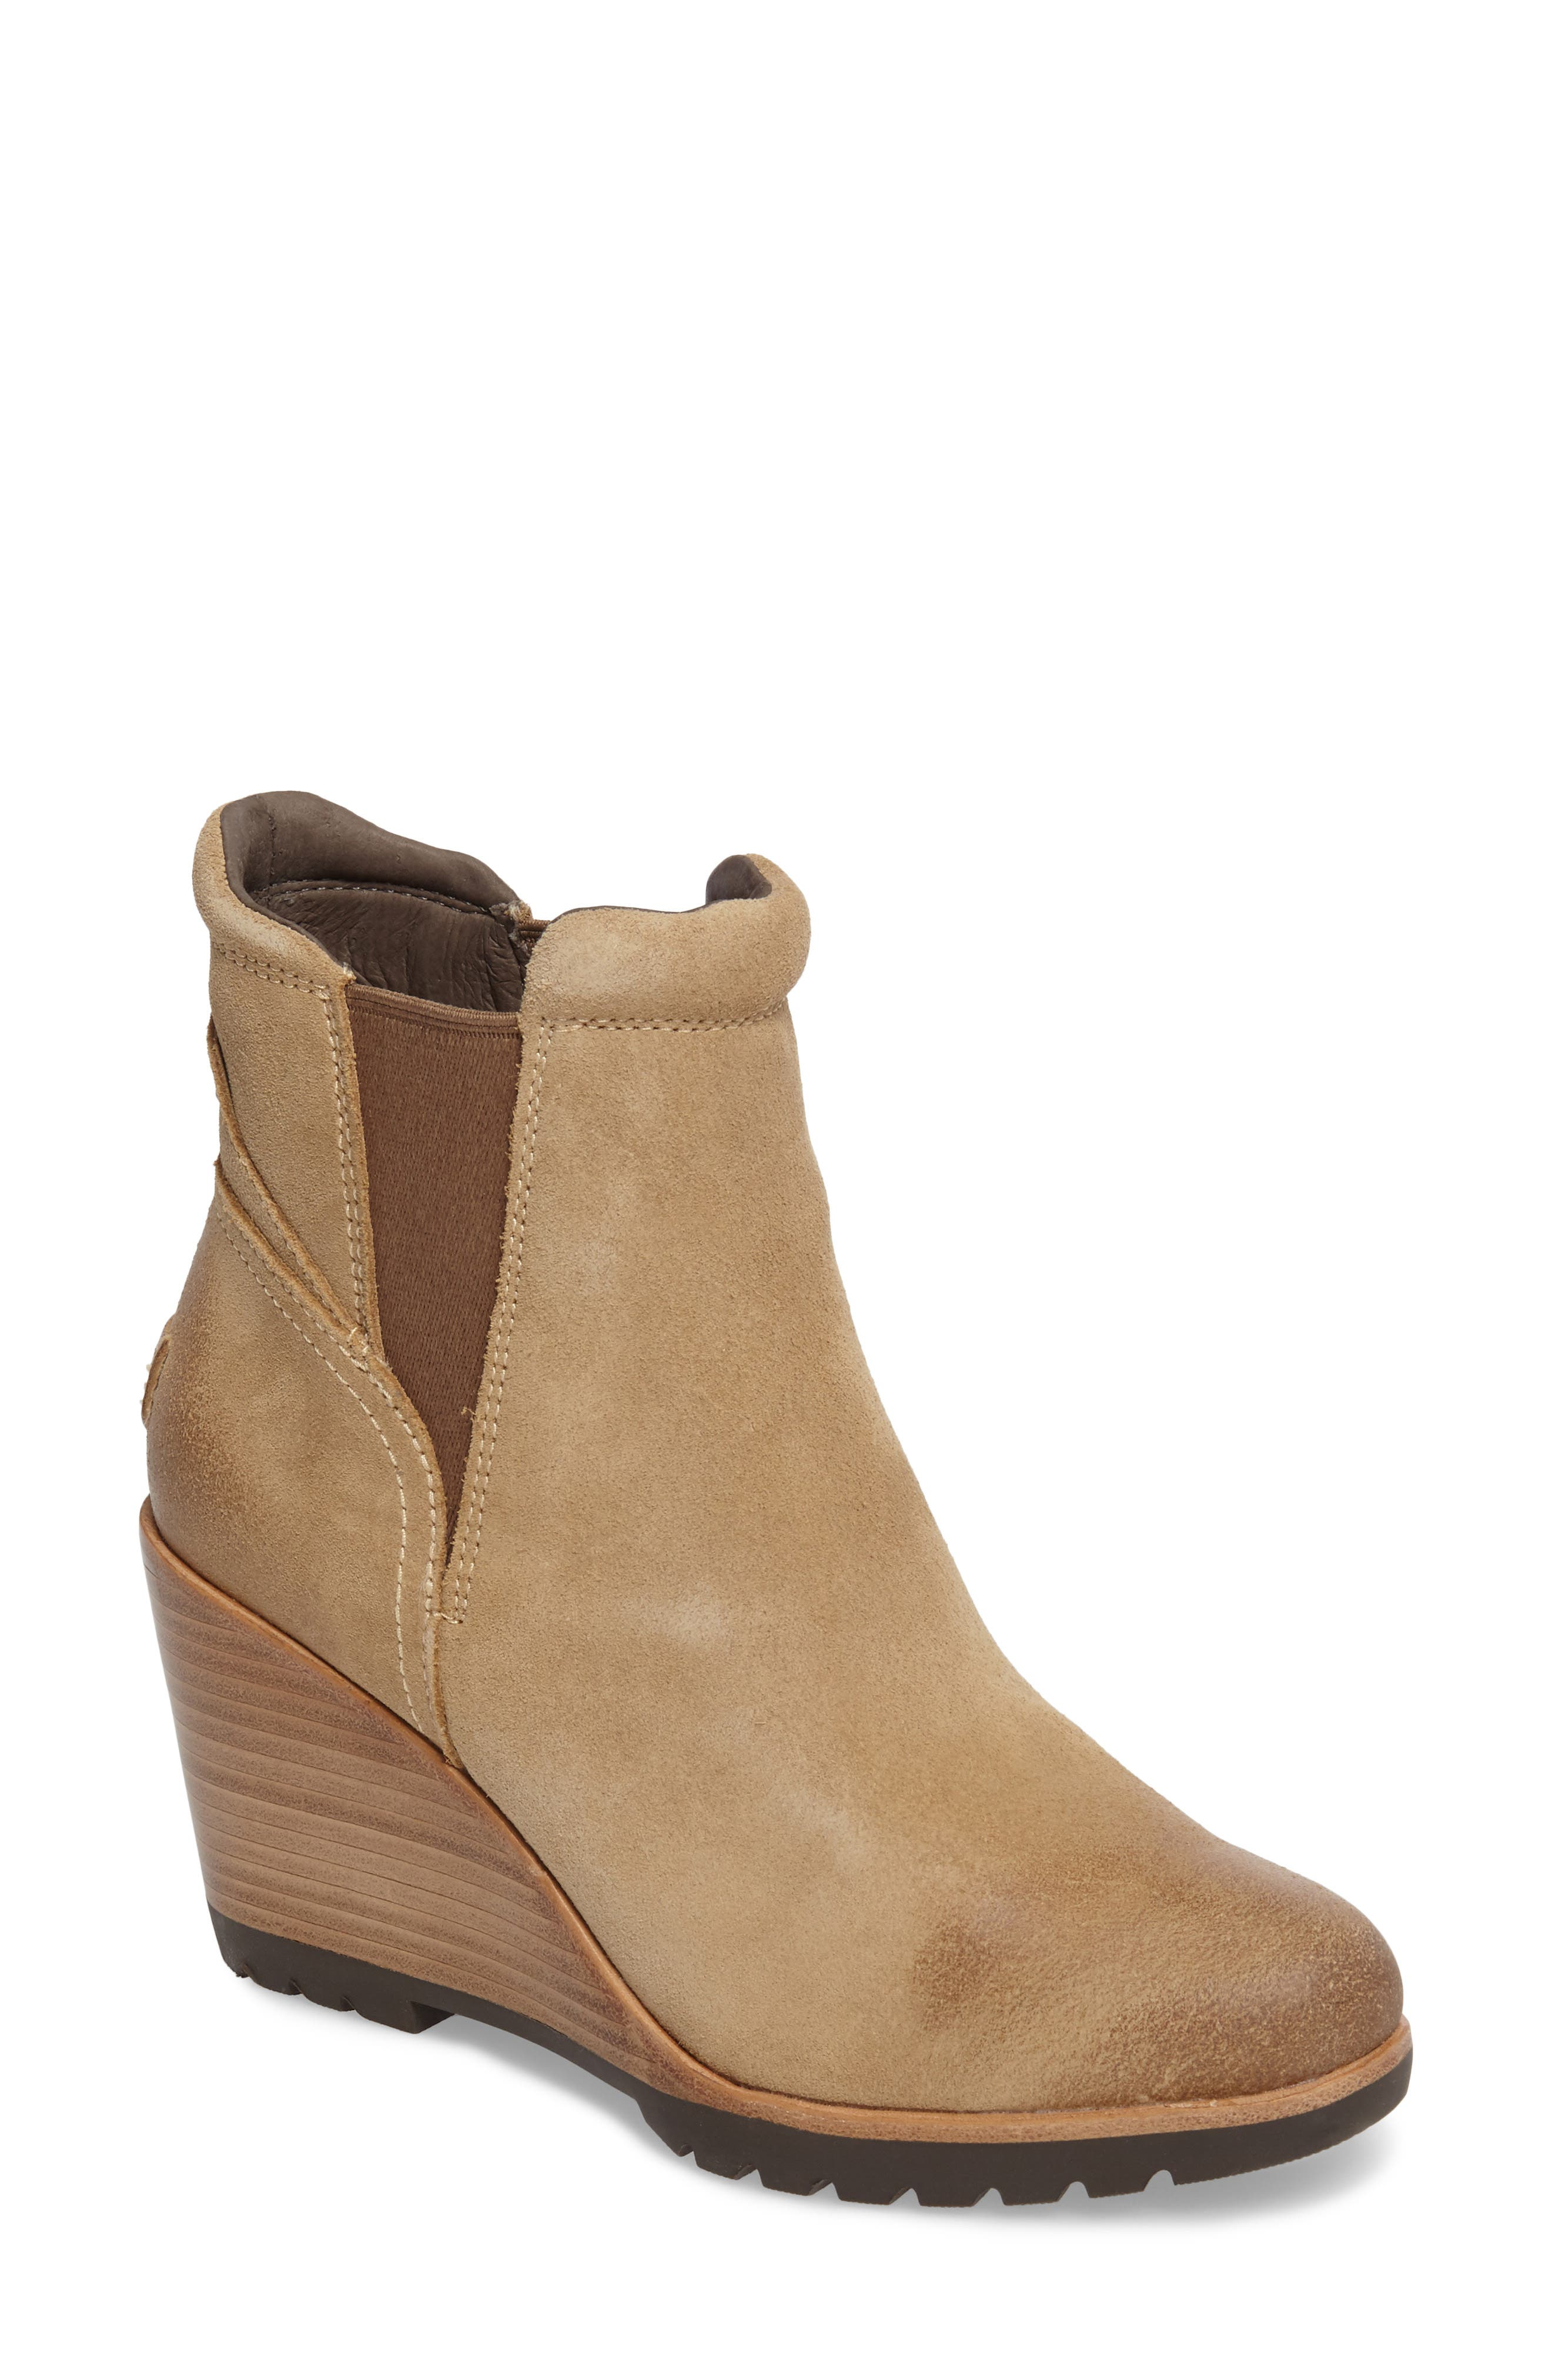 Main Image - SOREL After Hours Chelsea Boot (Women)